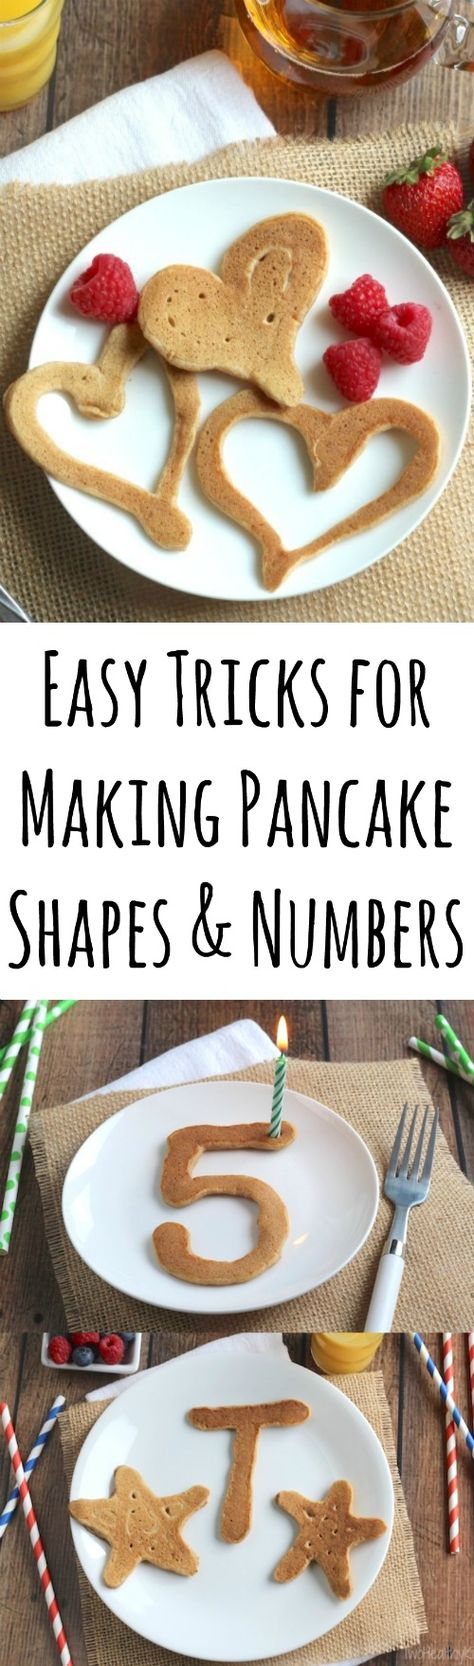 Perfect for Valentine's Day! Your kids will love these heart-shaped pancakes! So easy, fun and mess-free! Plus - tips for making other holiday shapes and birthday numbers, too! | www.TwoHealthyKitchens.com